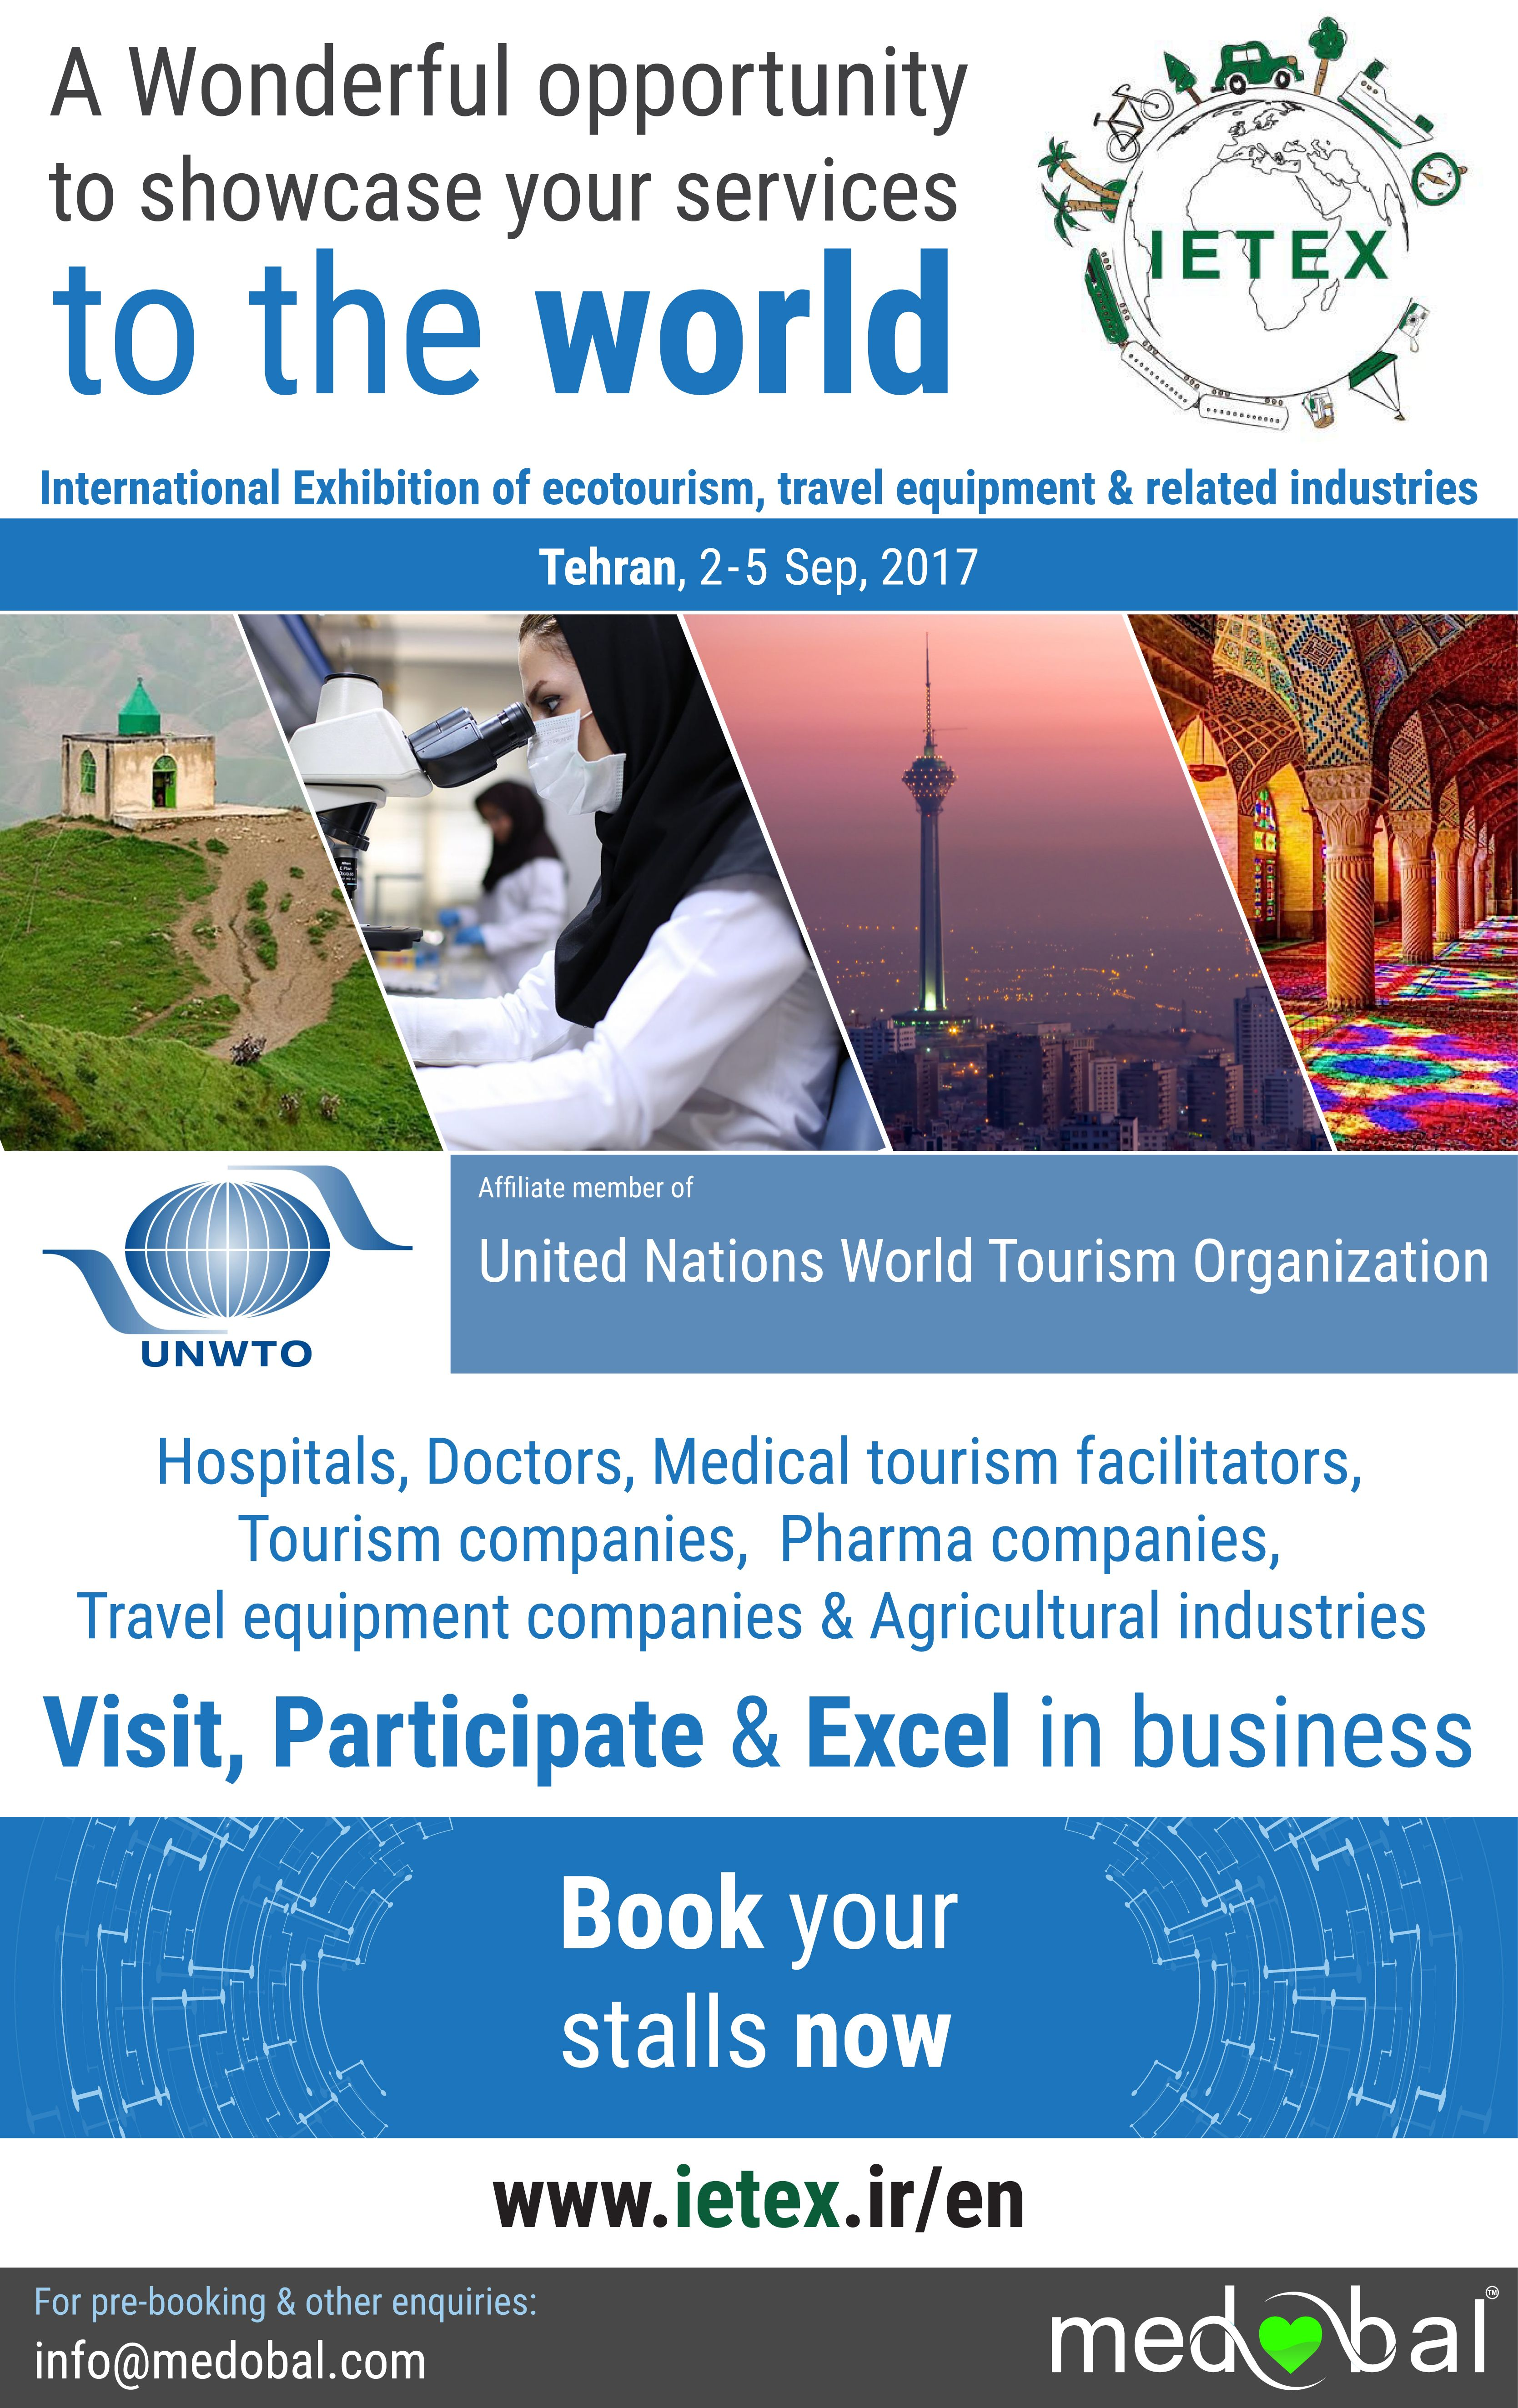 International Exhibition Of Ecotourism Travel Equipment Related